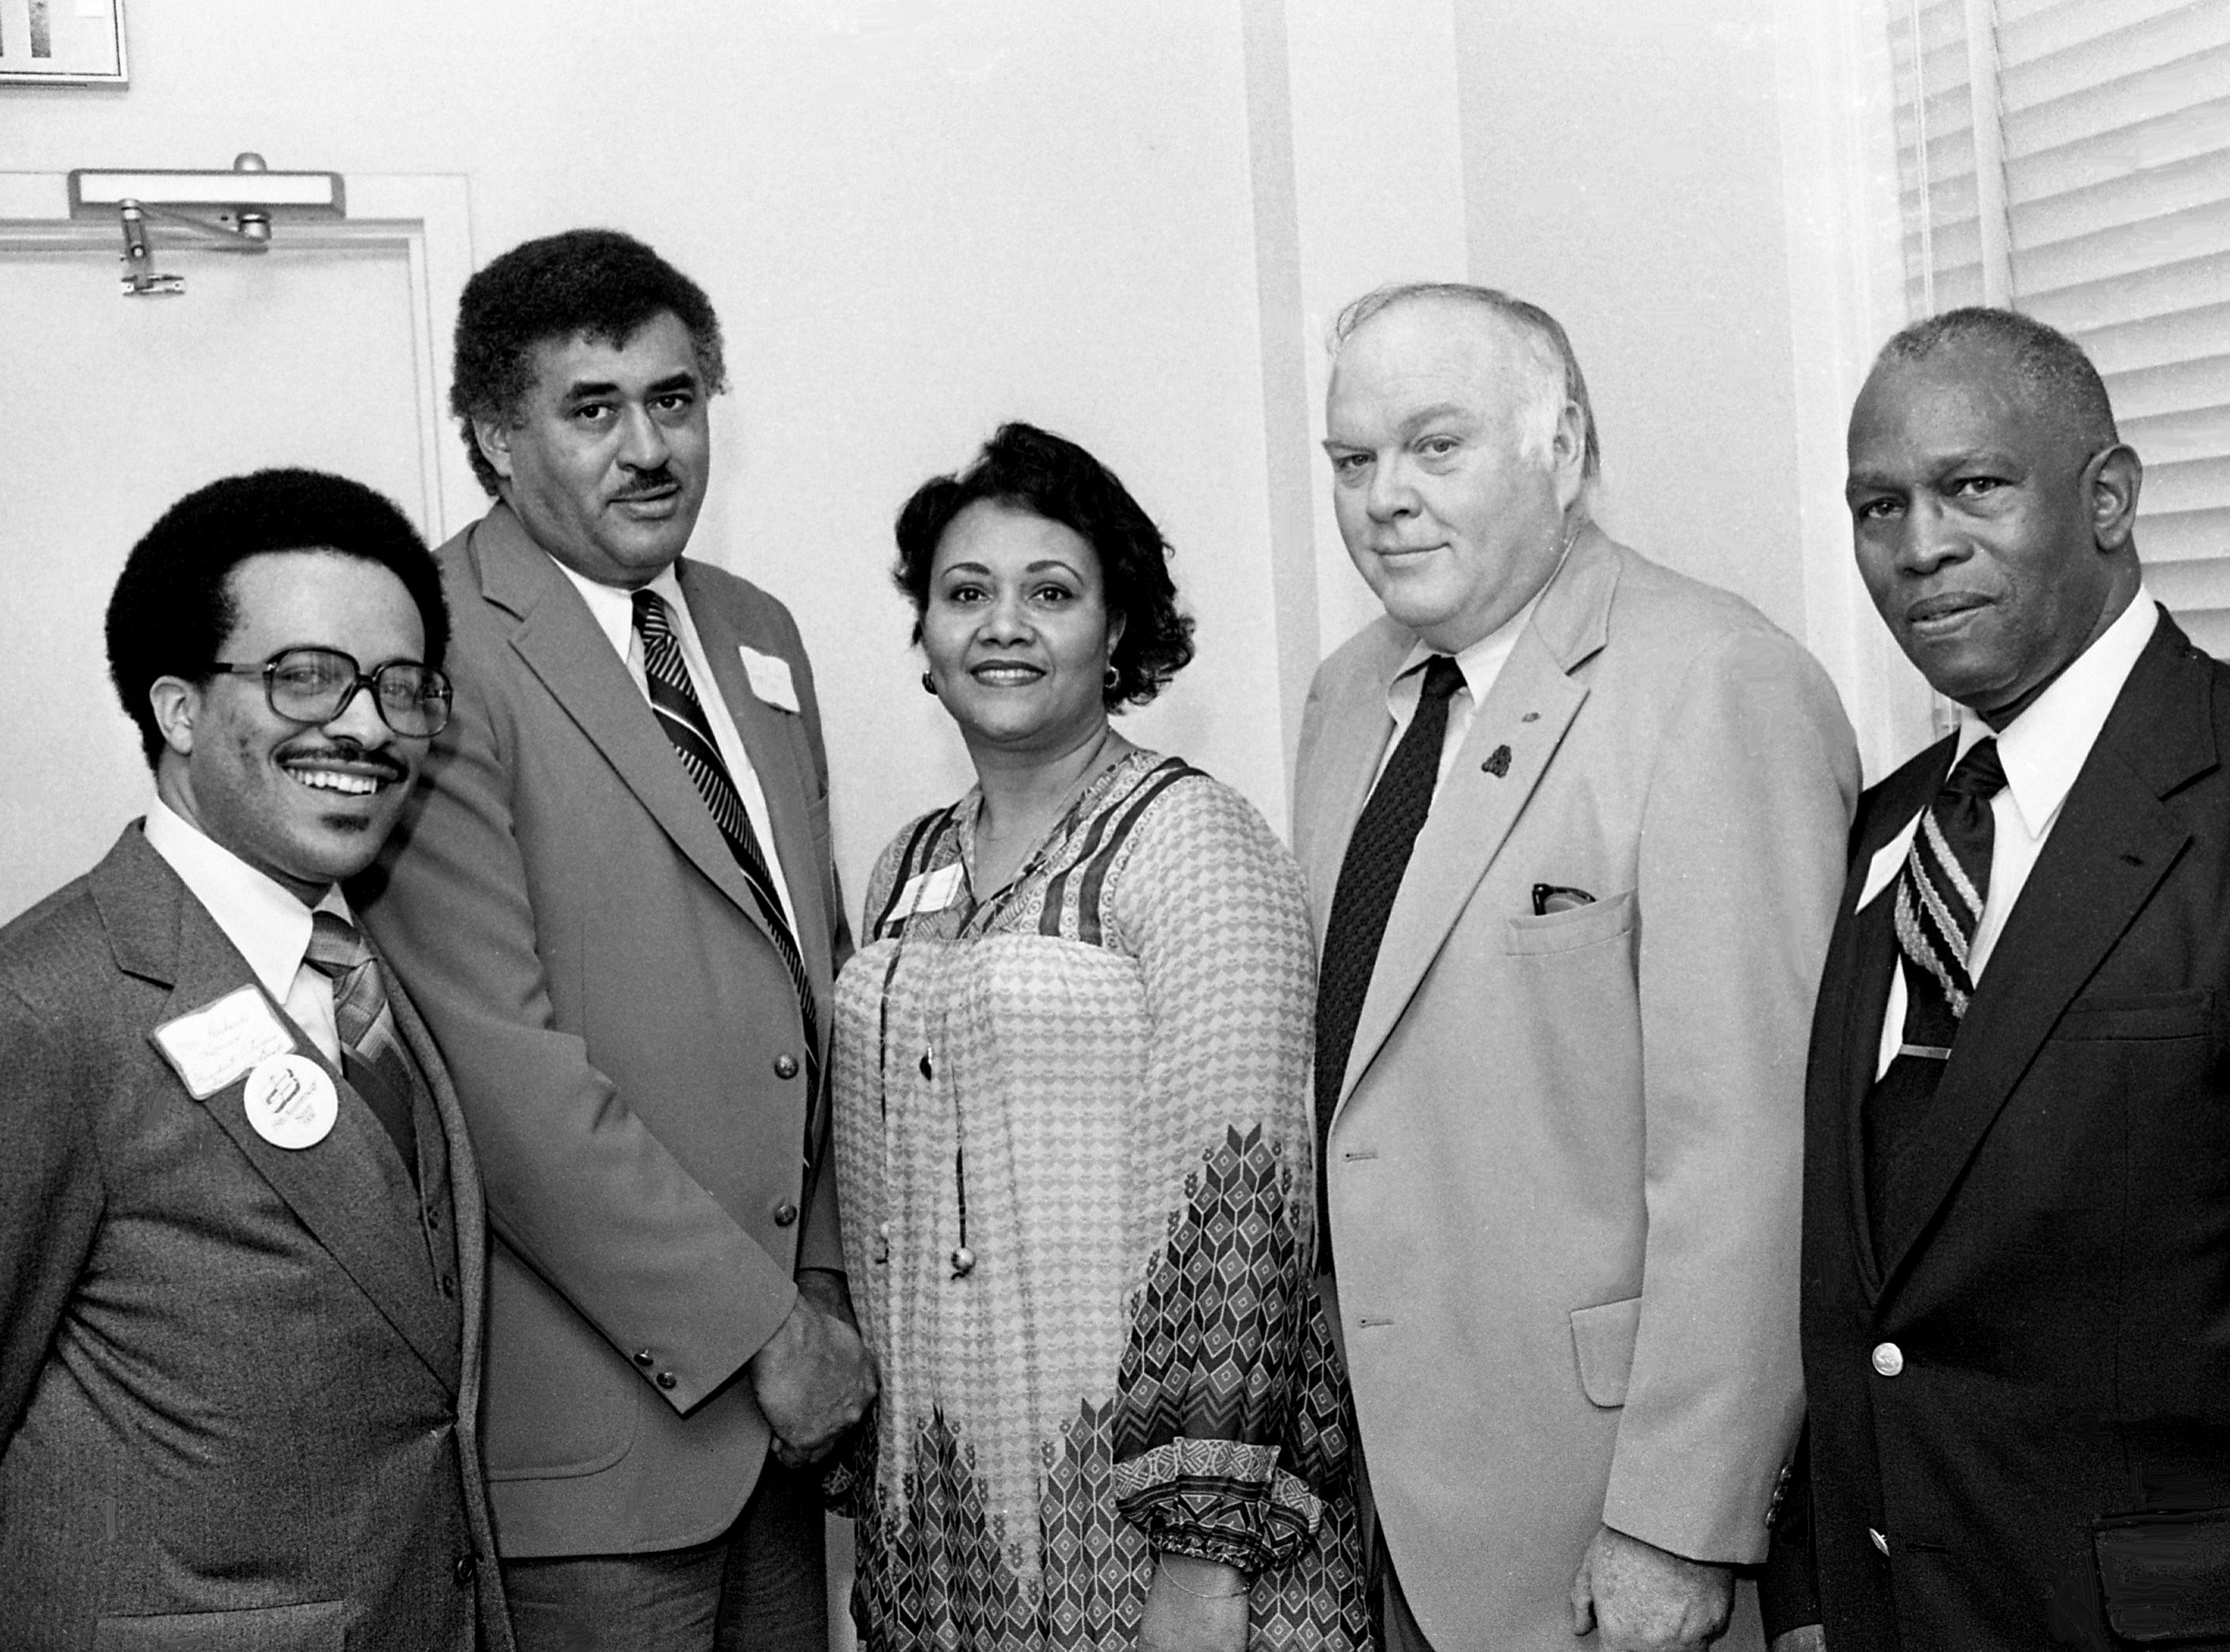 Richard Lewis, left, president of the Citizen's Saving Bank and Trust Co., the oldest minority-owned bank in the state and the second oldest in the nation, is flanked by Tennessee State University President Frederick S. Humphries; Mary Alice Ridley, TSU Nashville alumni chapter president; House Speaker Ned McWherter; and Rep. C.B. Robinson, D-Chattanooga, head of the legislative black caucus, during a reception sponsored by the bank and the TSU alumni chapter for legislators April 2, 1979.